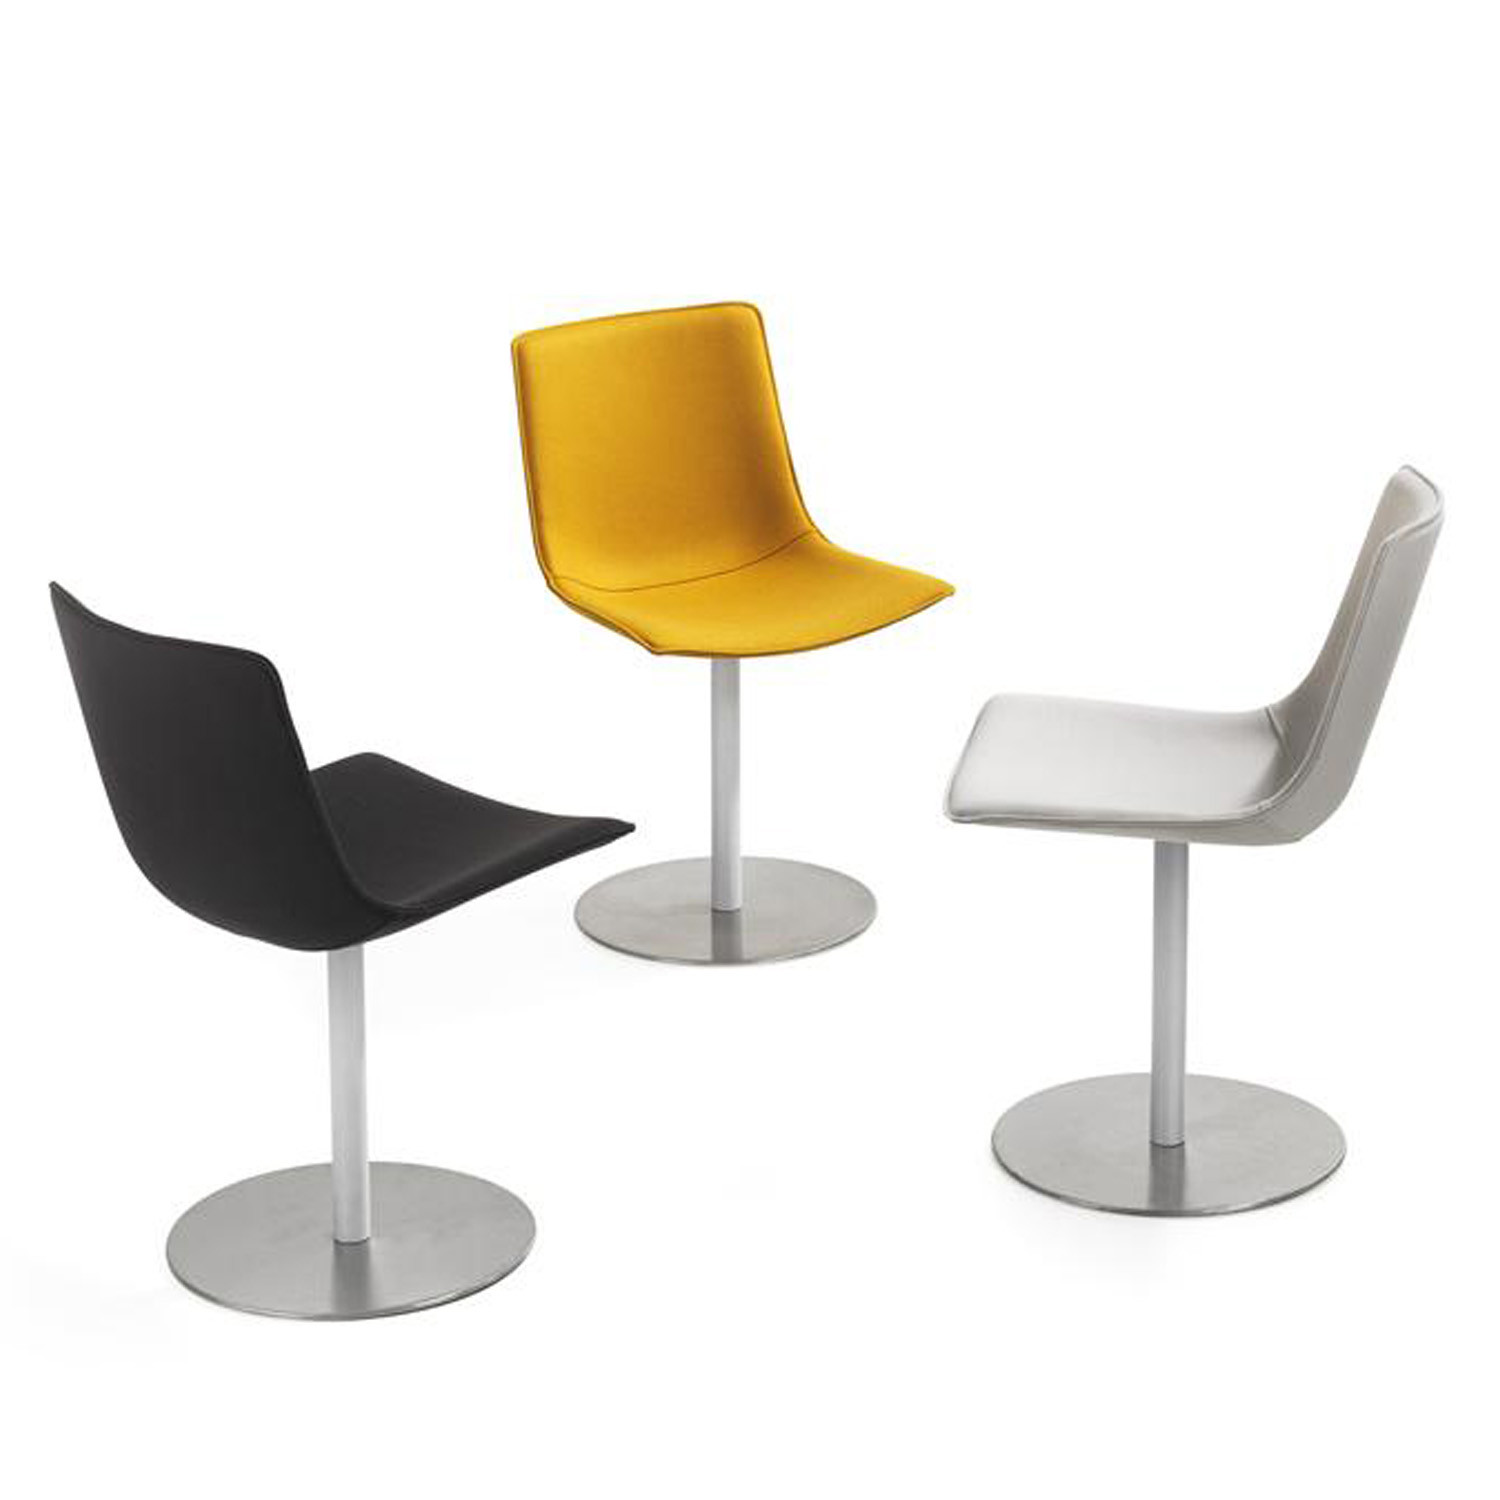 Comet Sport Chairs on Pedestal Base